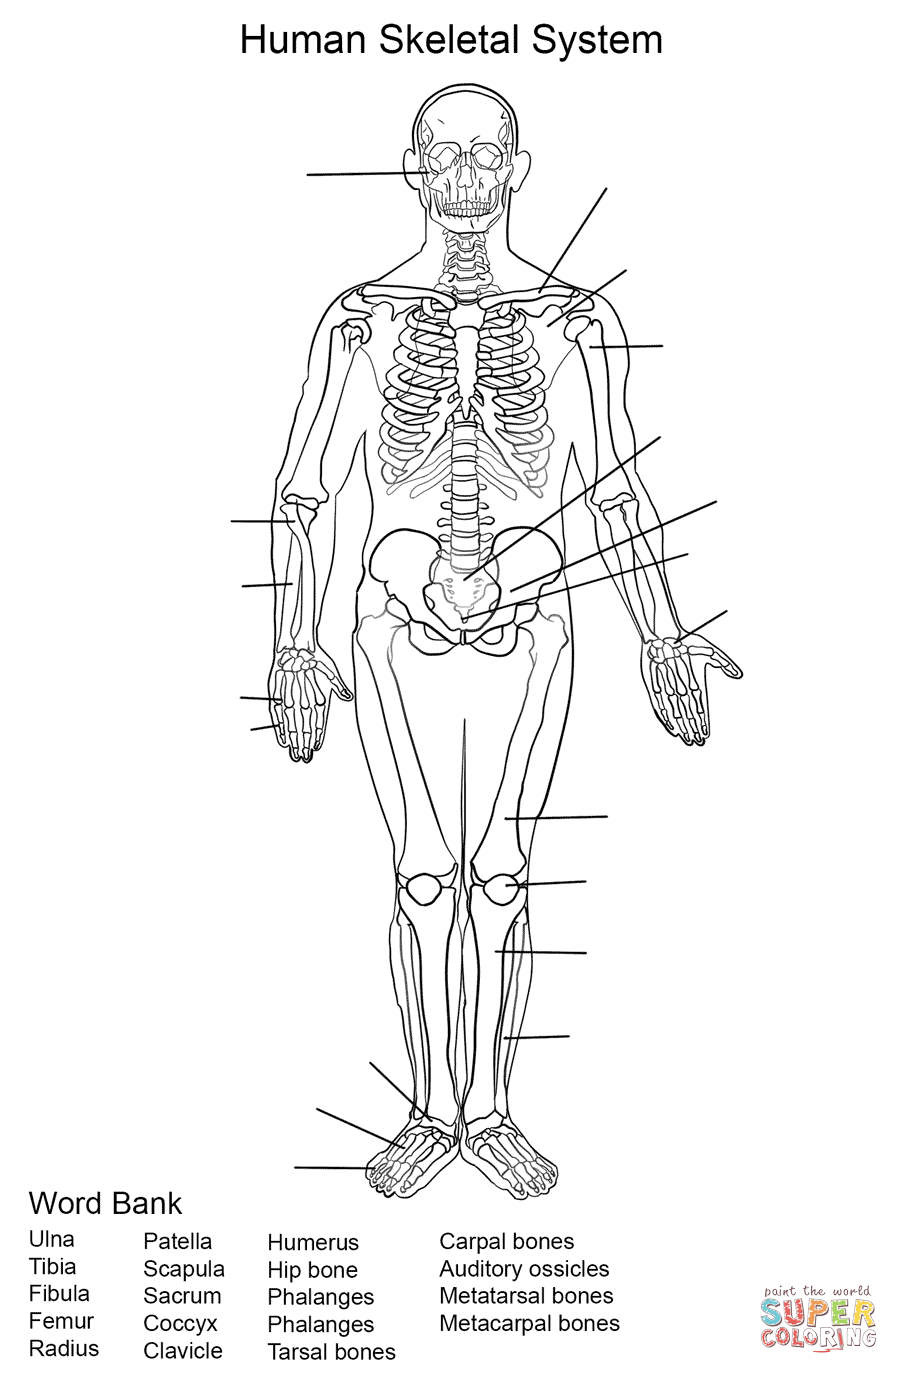 Respiratory System Coloring Worksheet Answers Coloring Pages